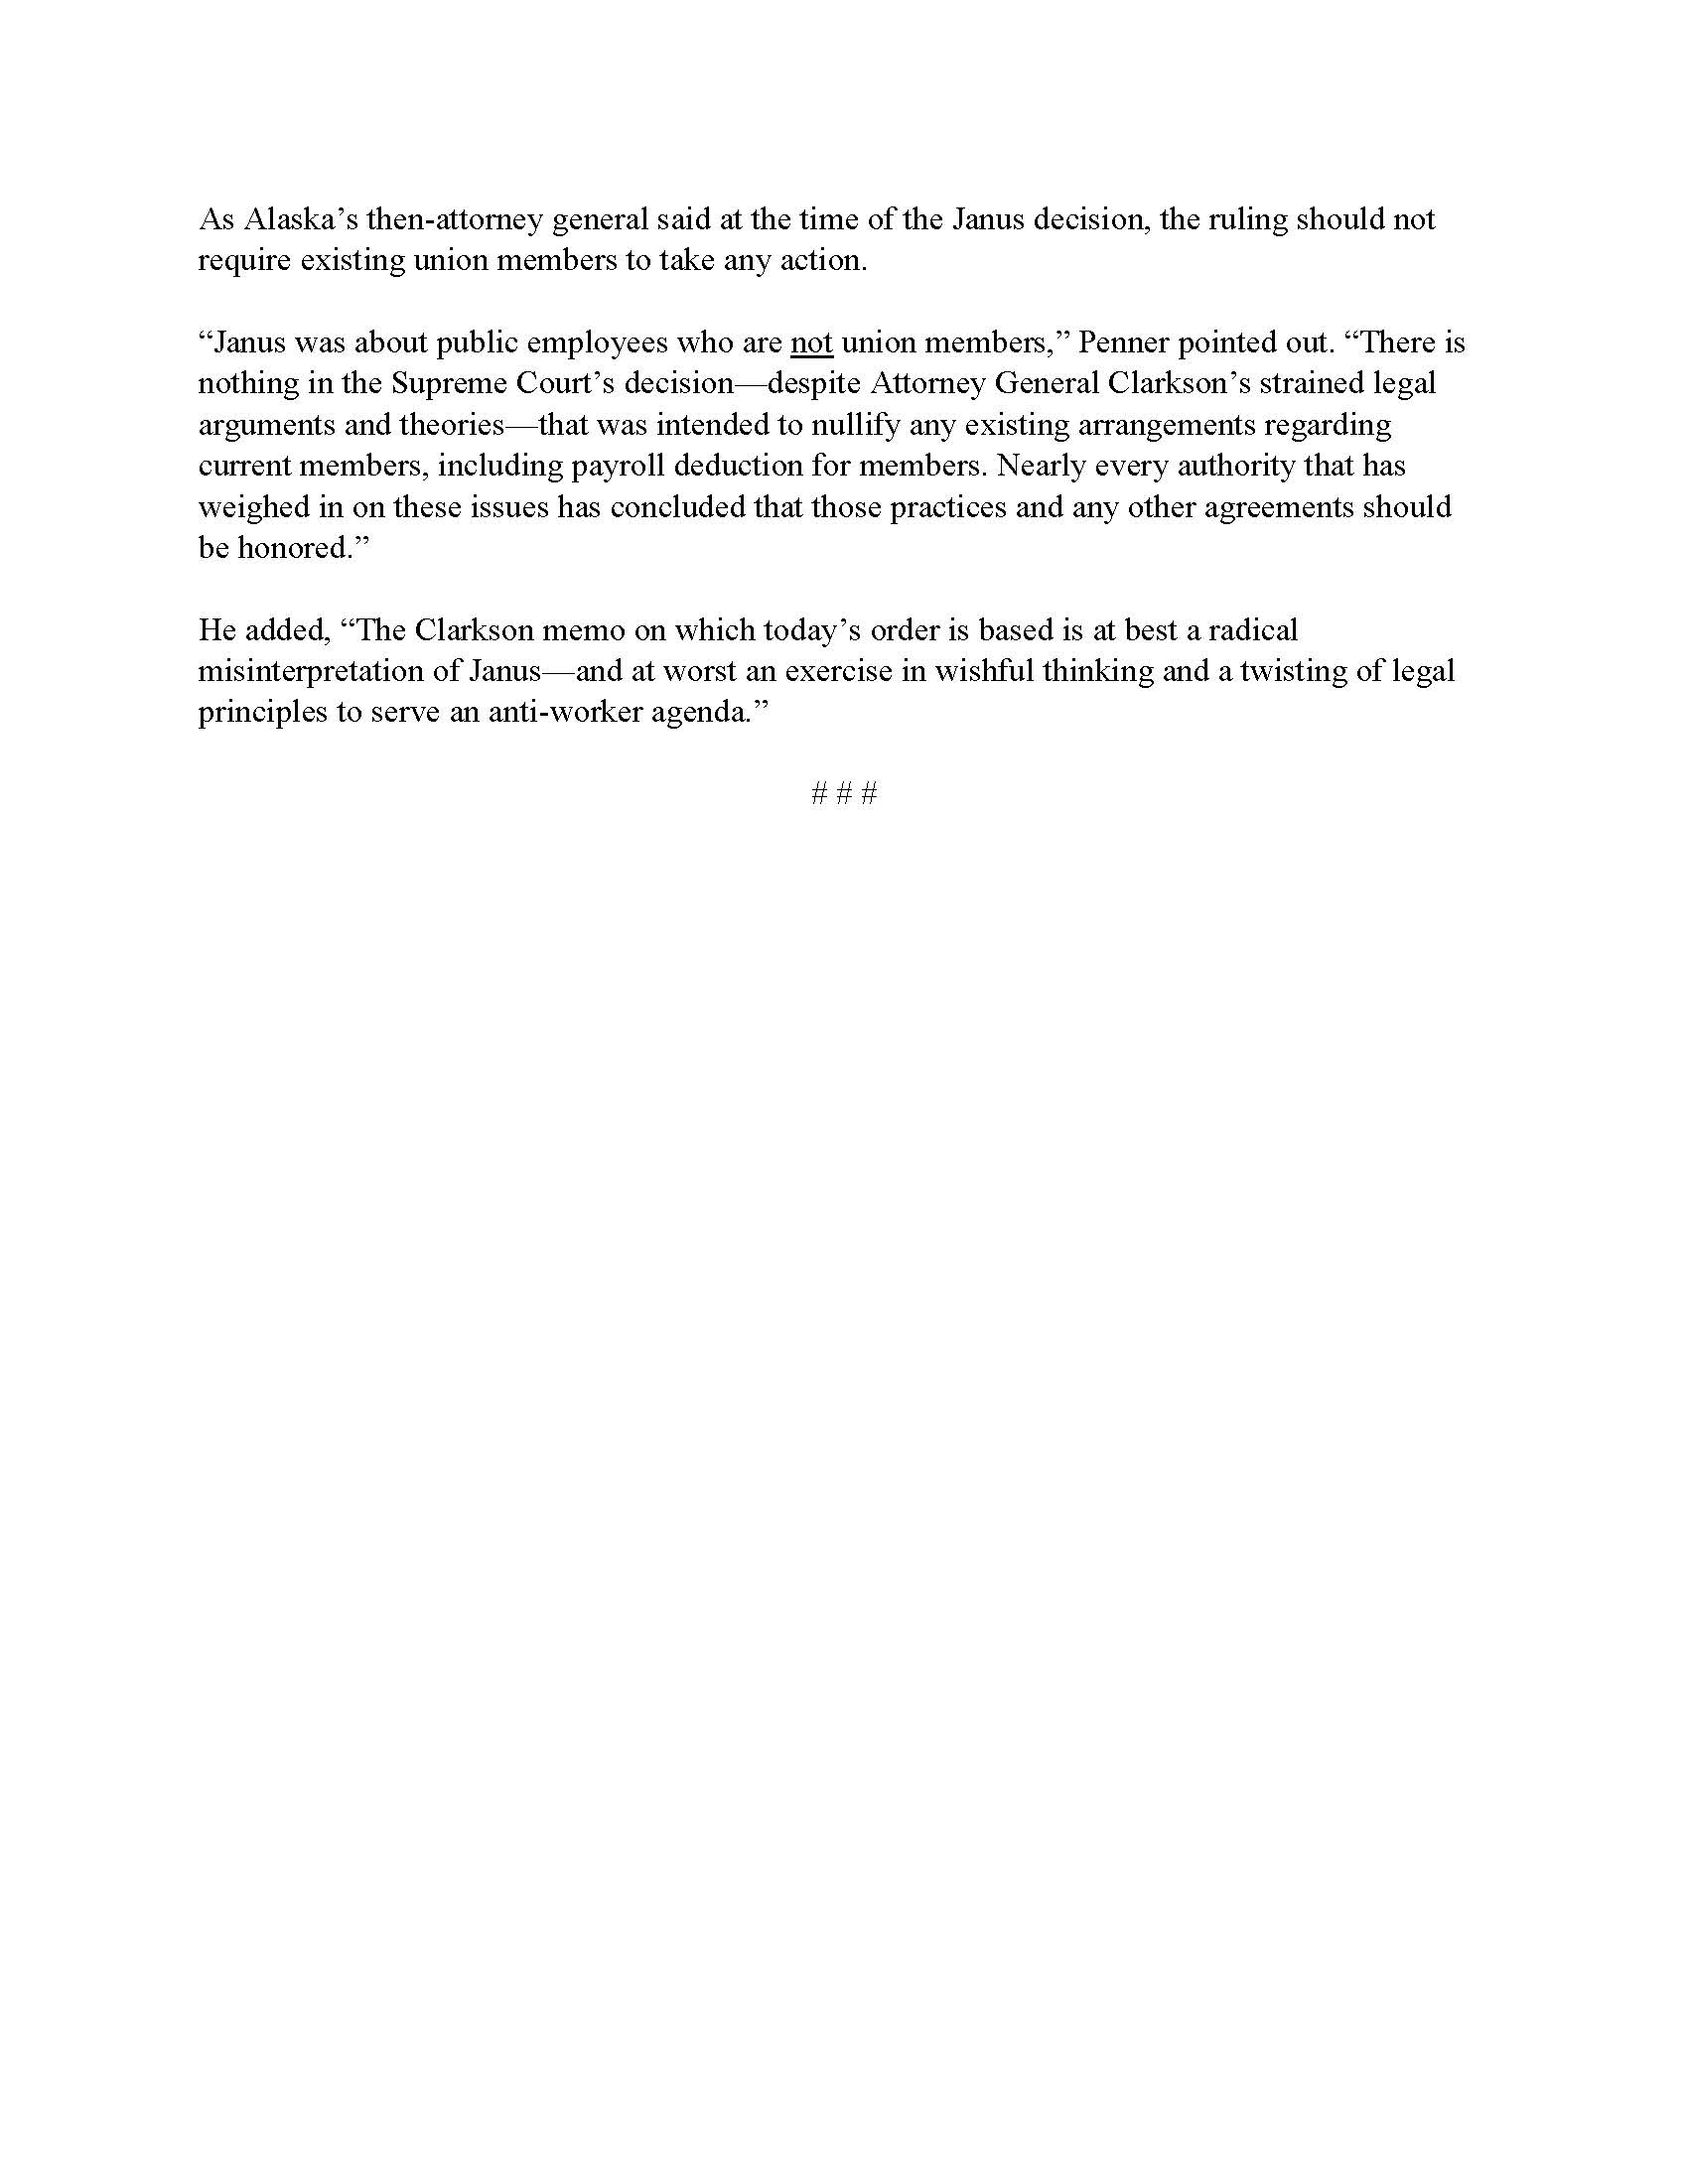 APEA Release on Order Attacking State Employee Rights 9.26.19_Page_2.jpg